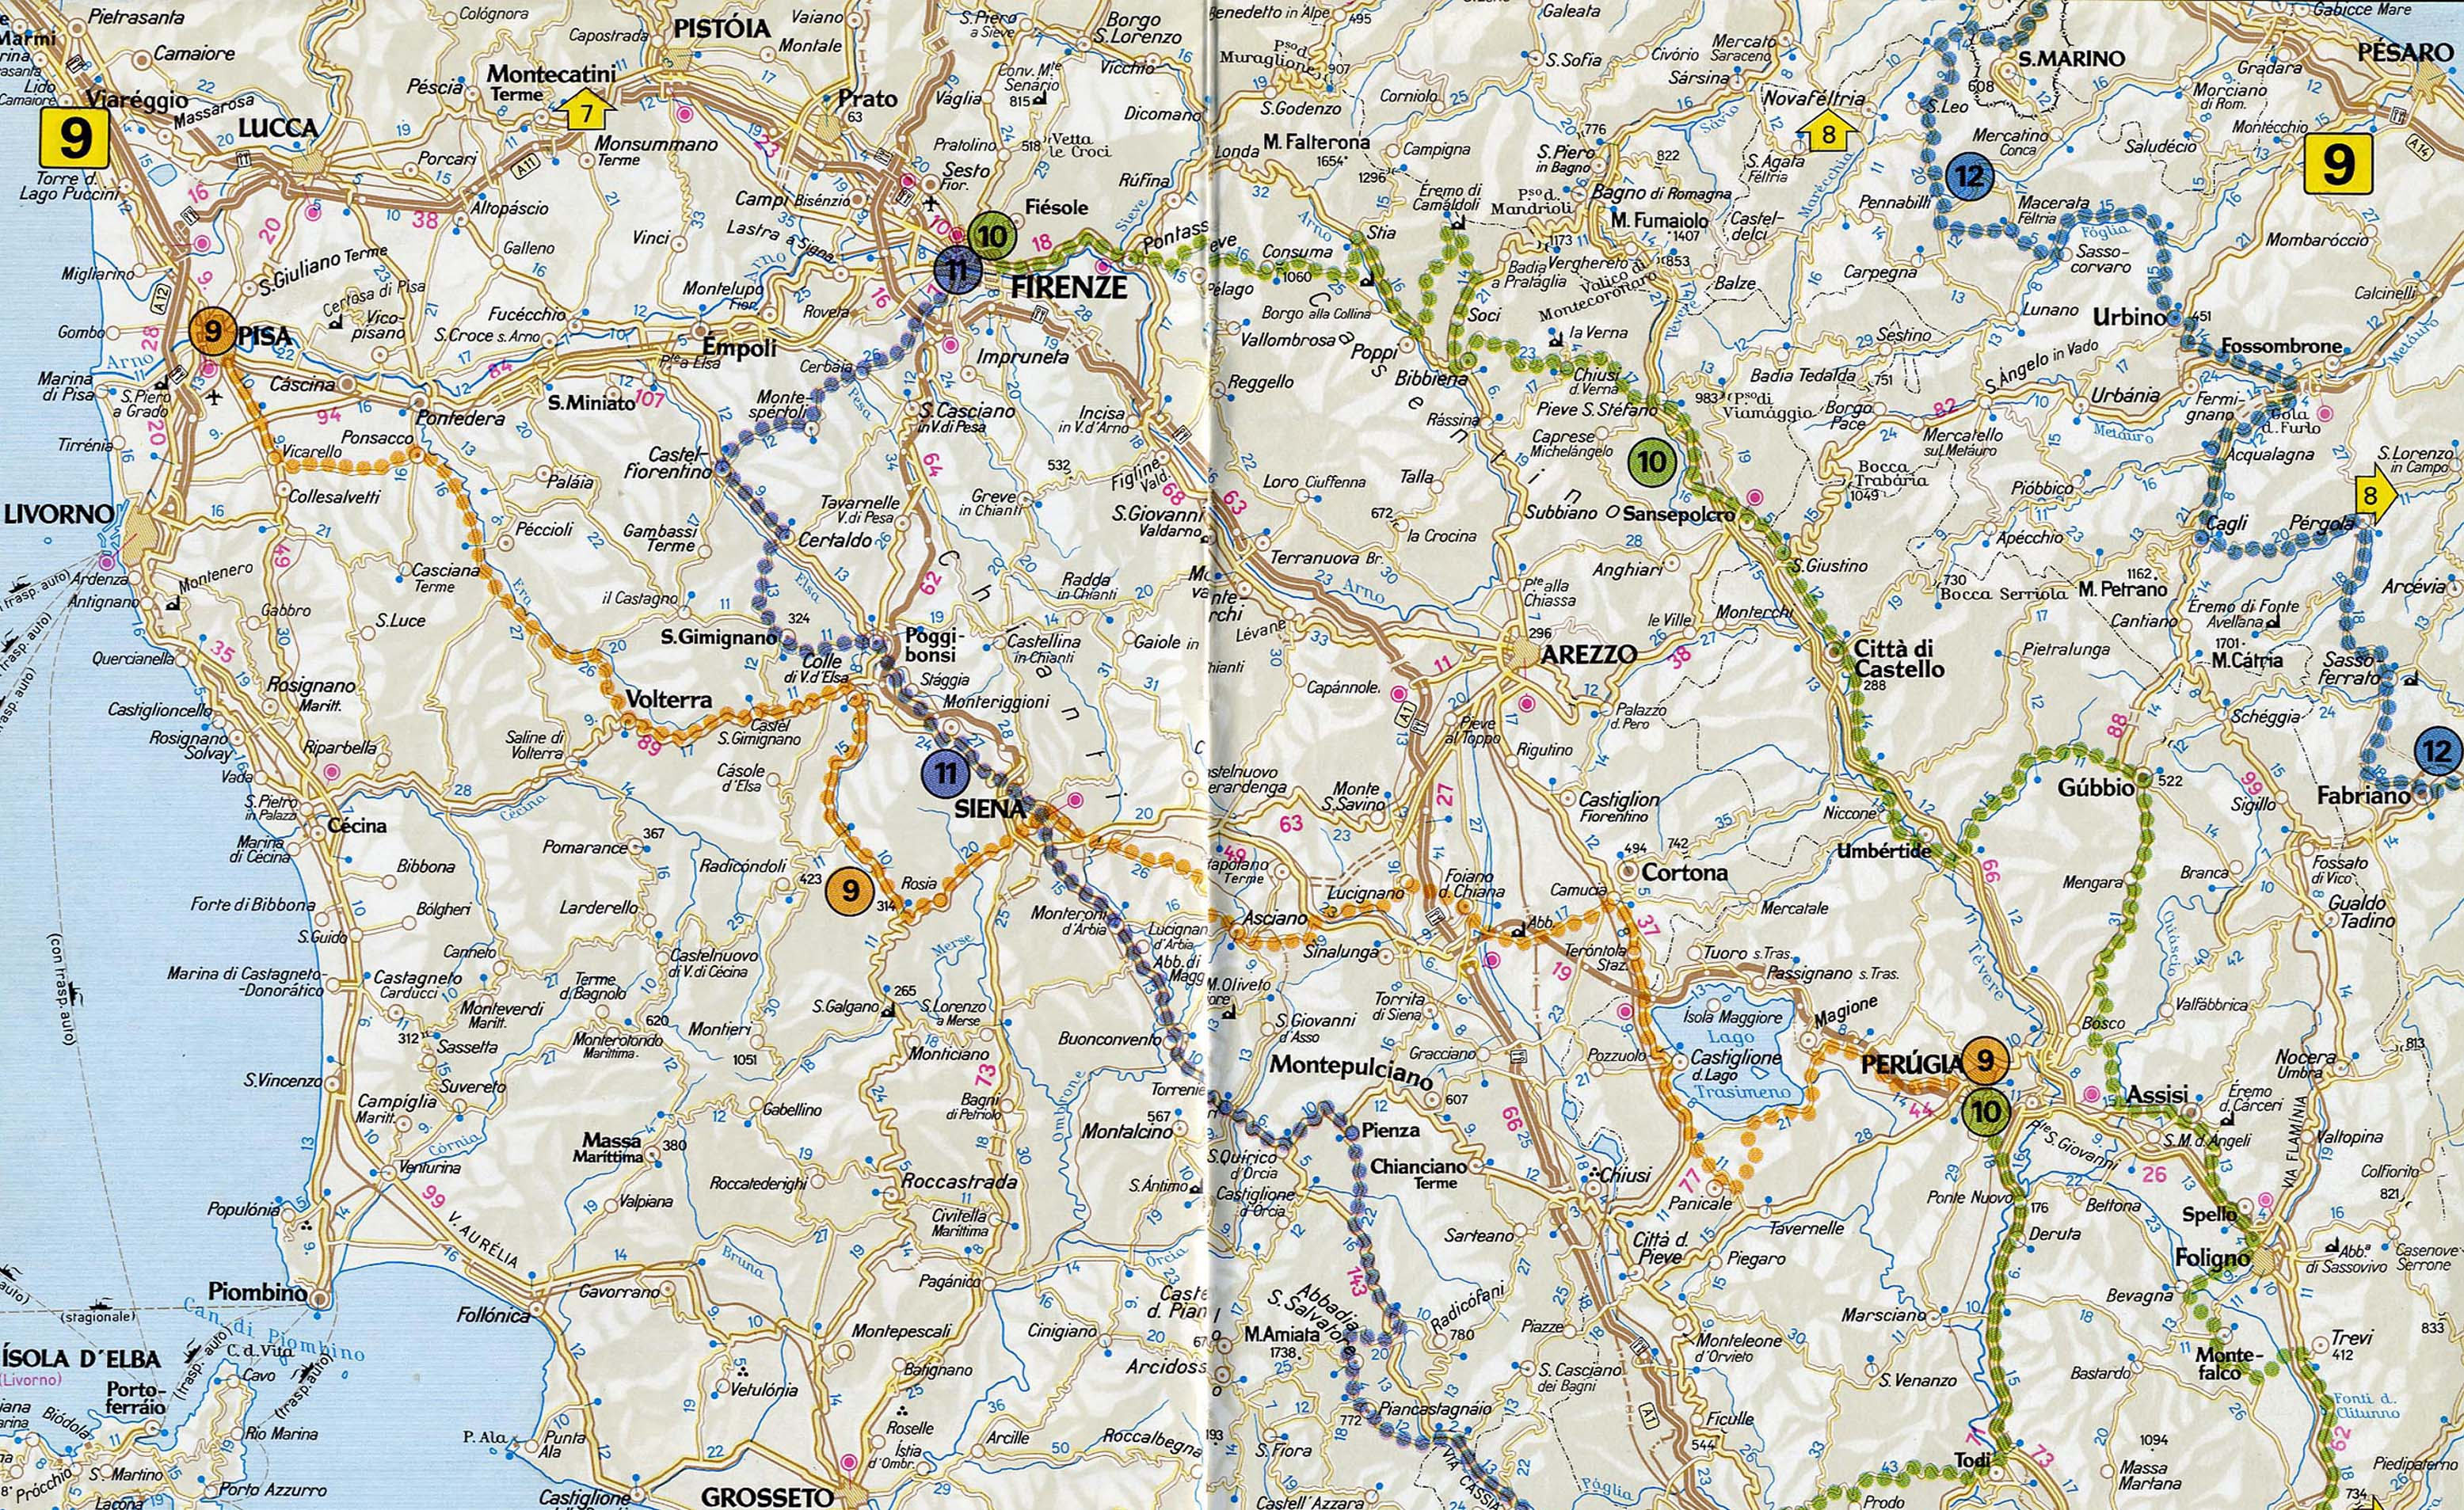 Tuscany Road Map Tuscany Italy Mappery - Map tuscany